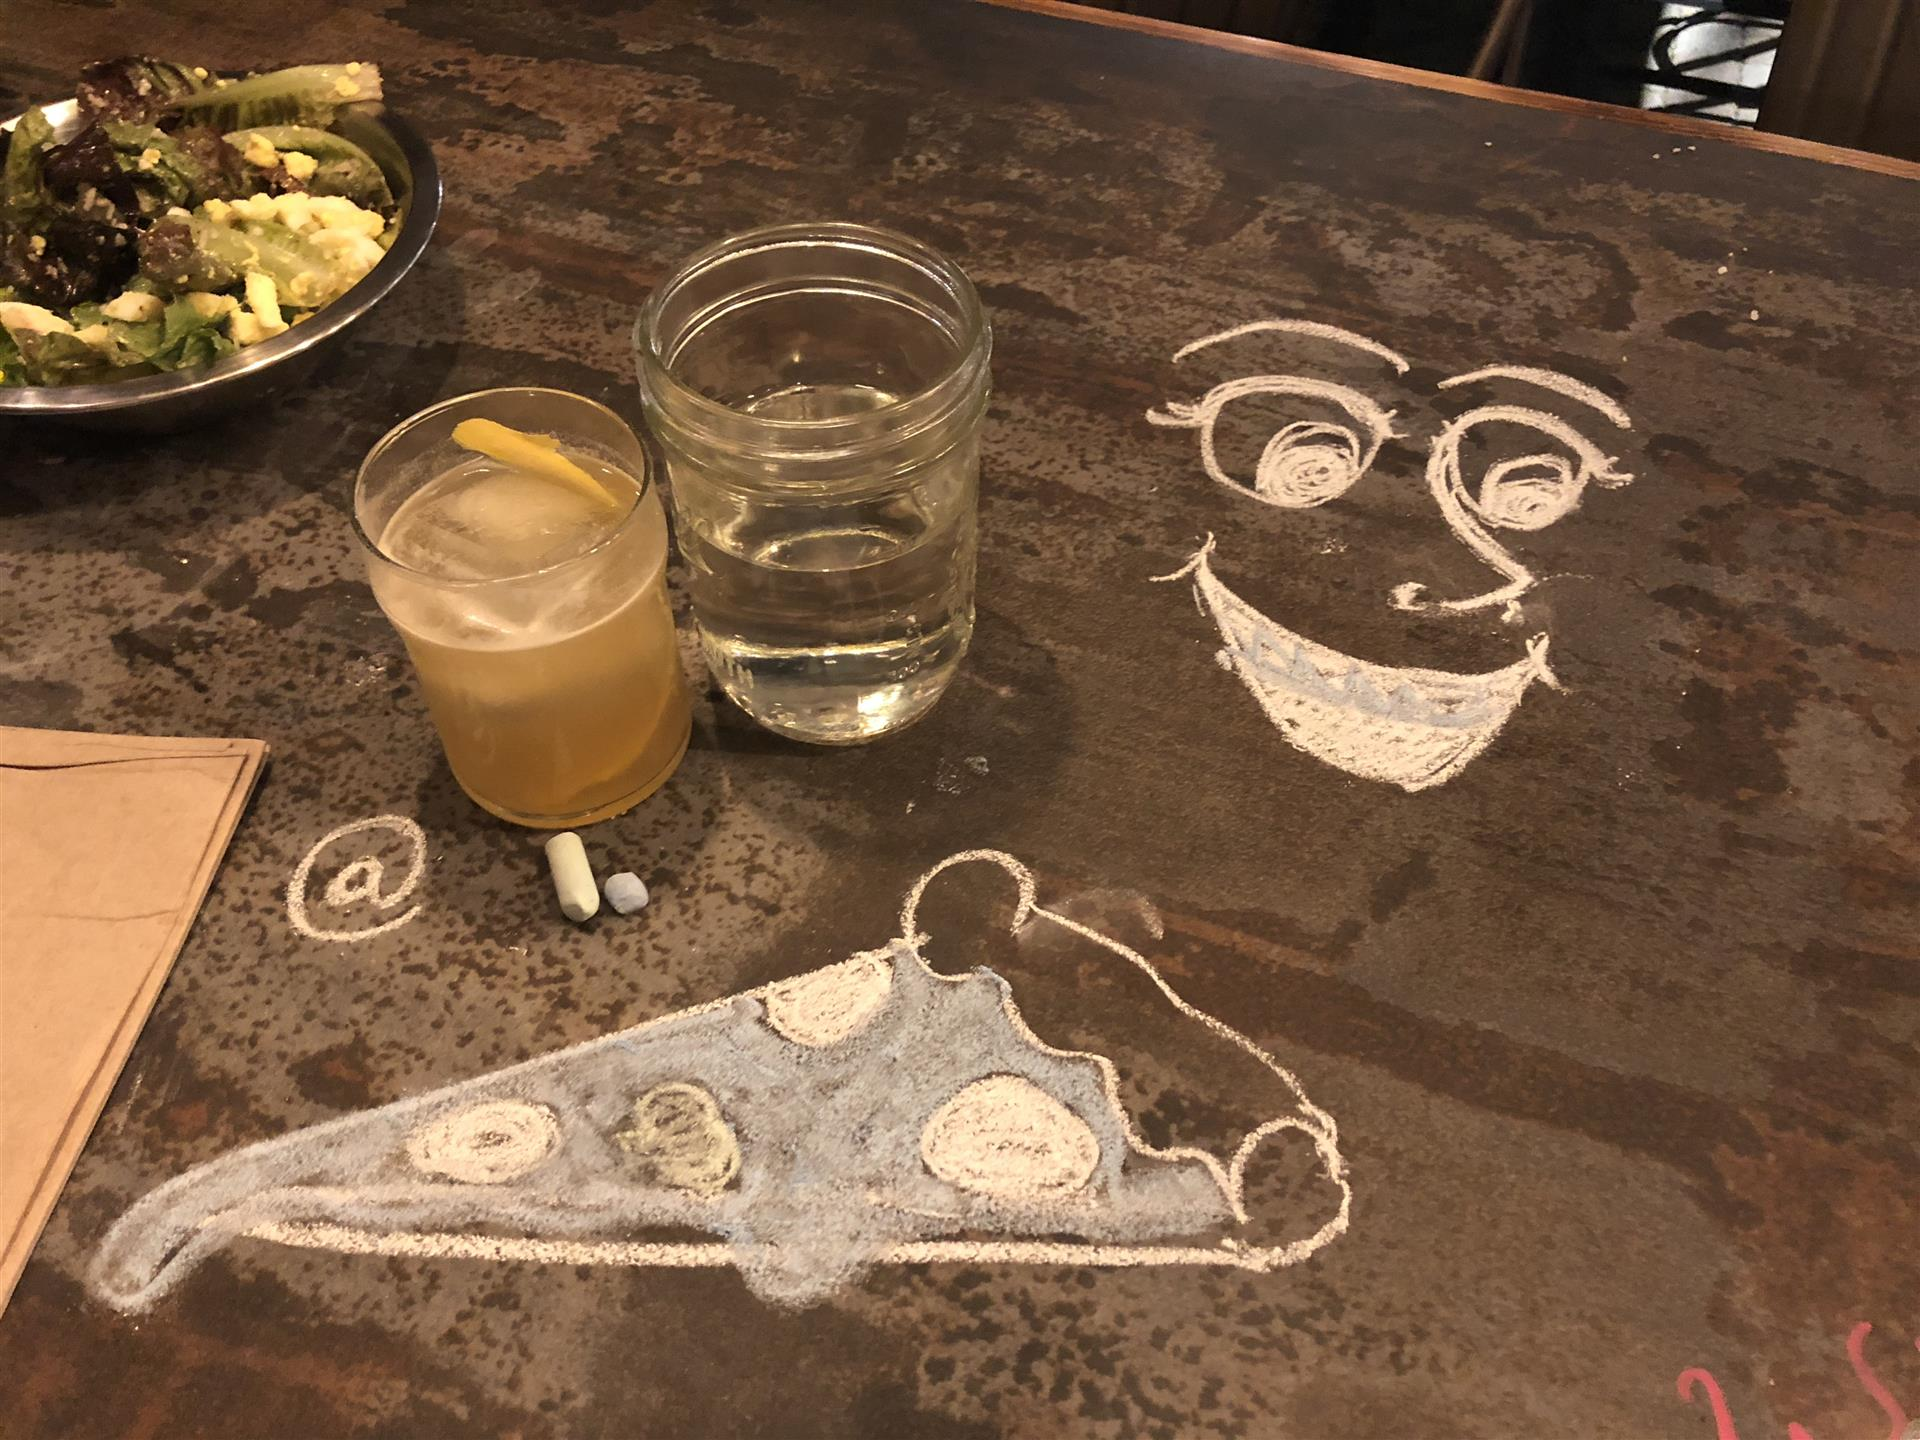 chalk art of a face and a slice of pizza with two drinks on the table